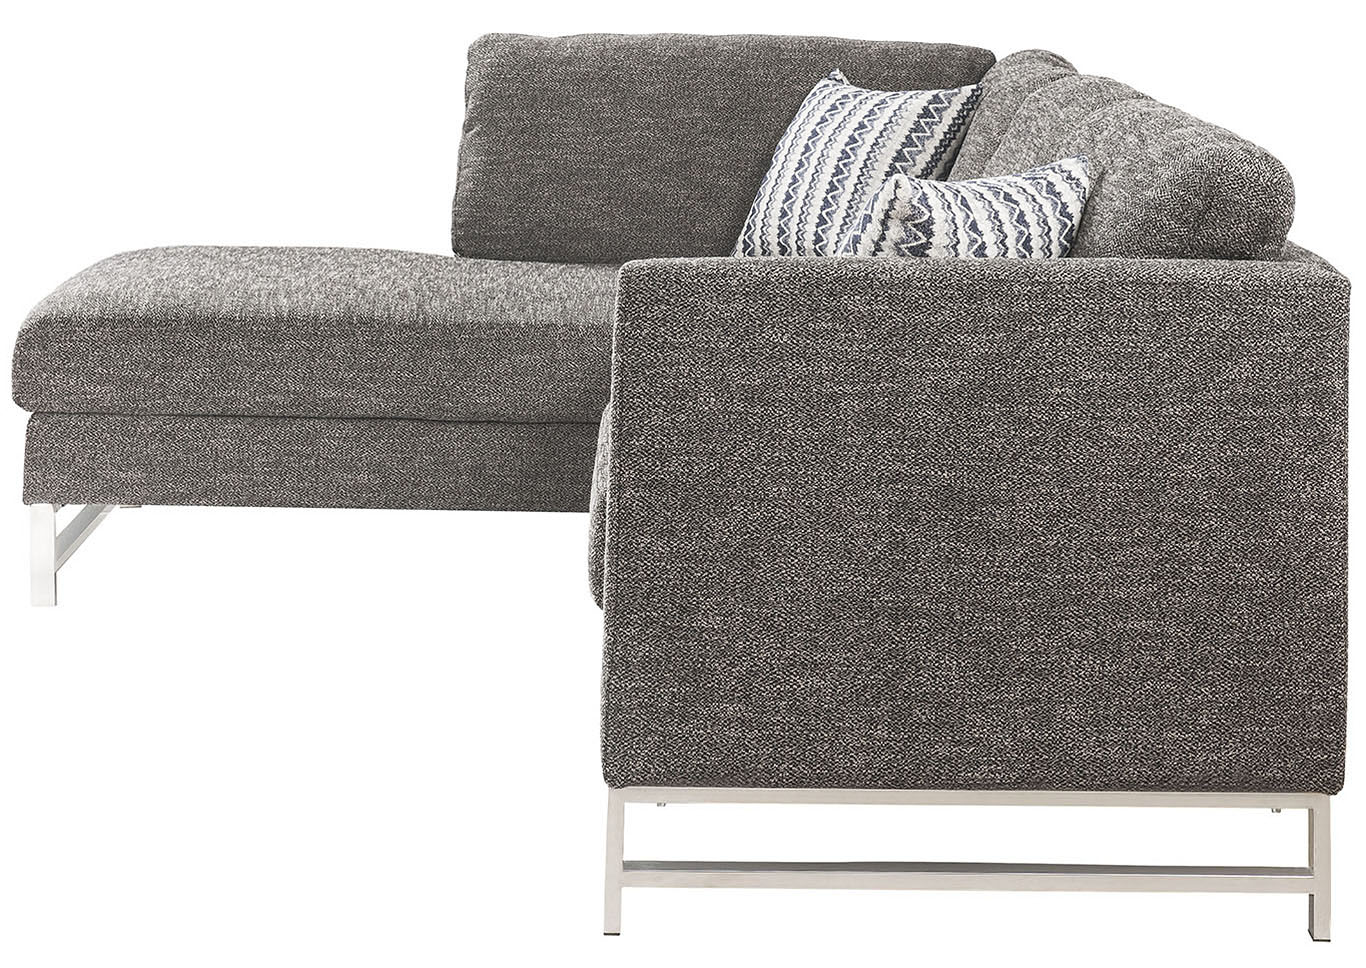 Varali Gray Linen Sectional Sofa,Acme